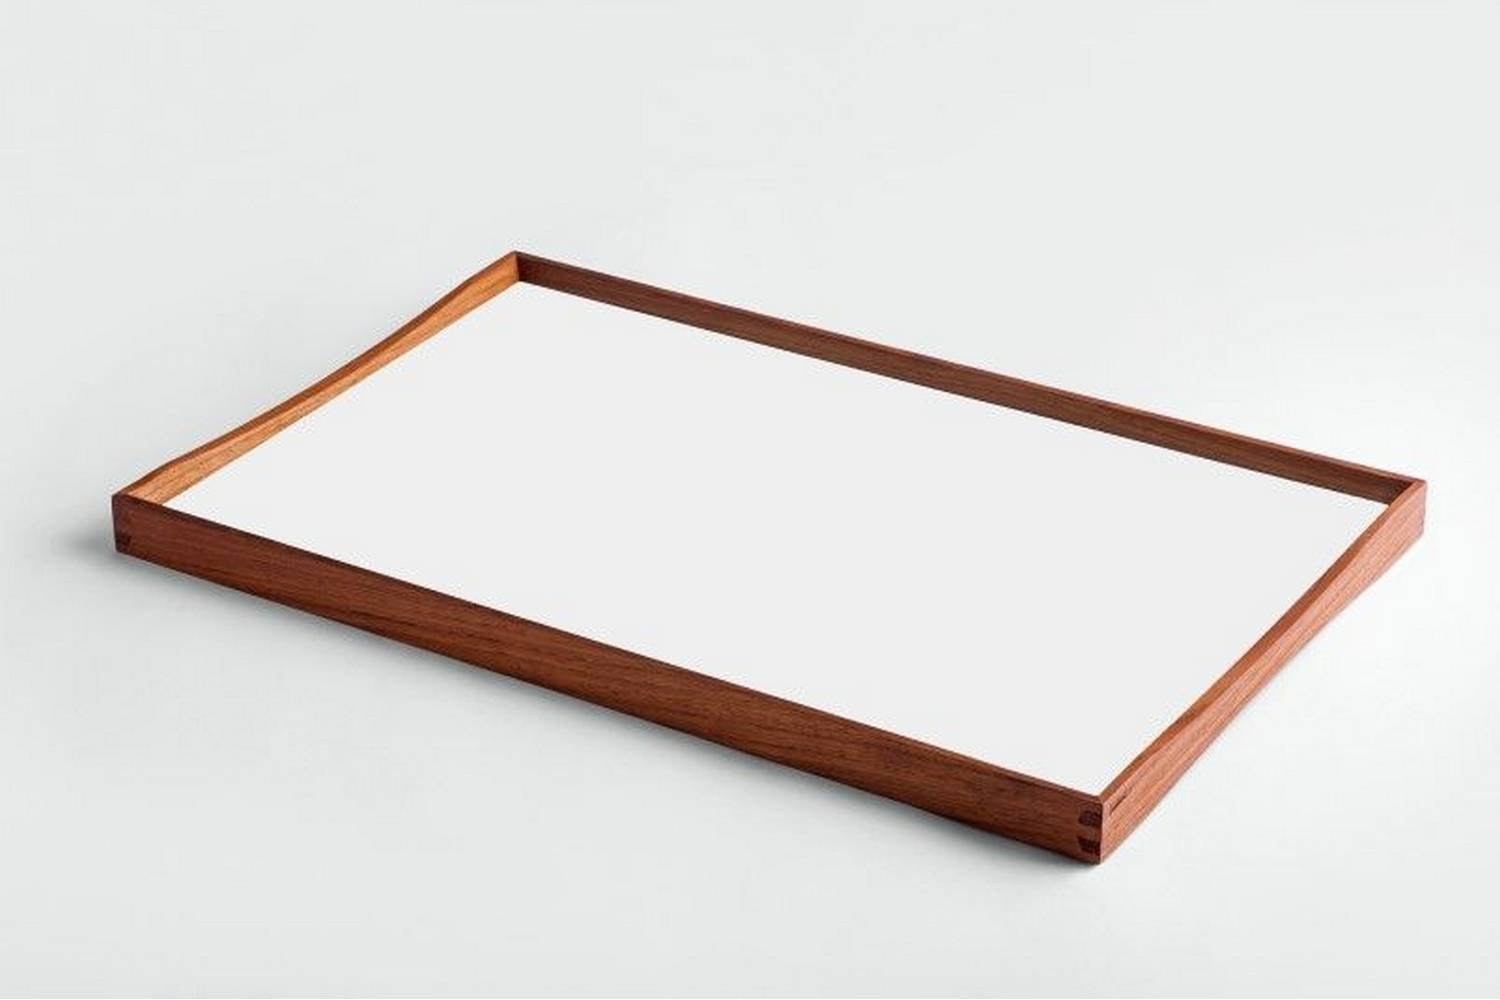 Turning Tray 2 by Finn Juhl for Architectmade